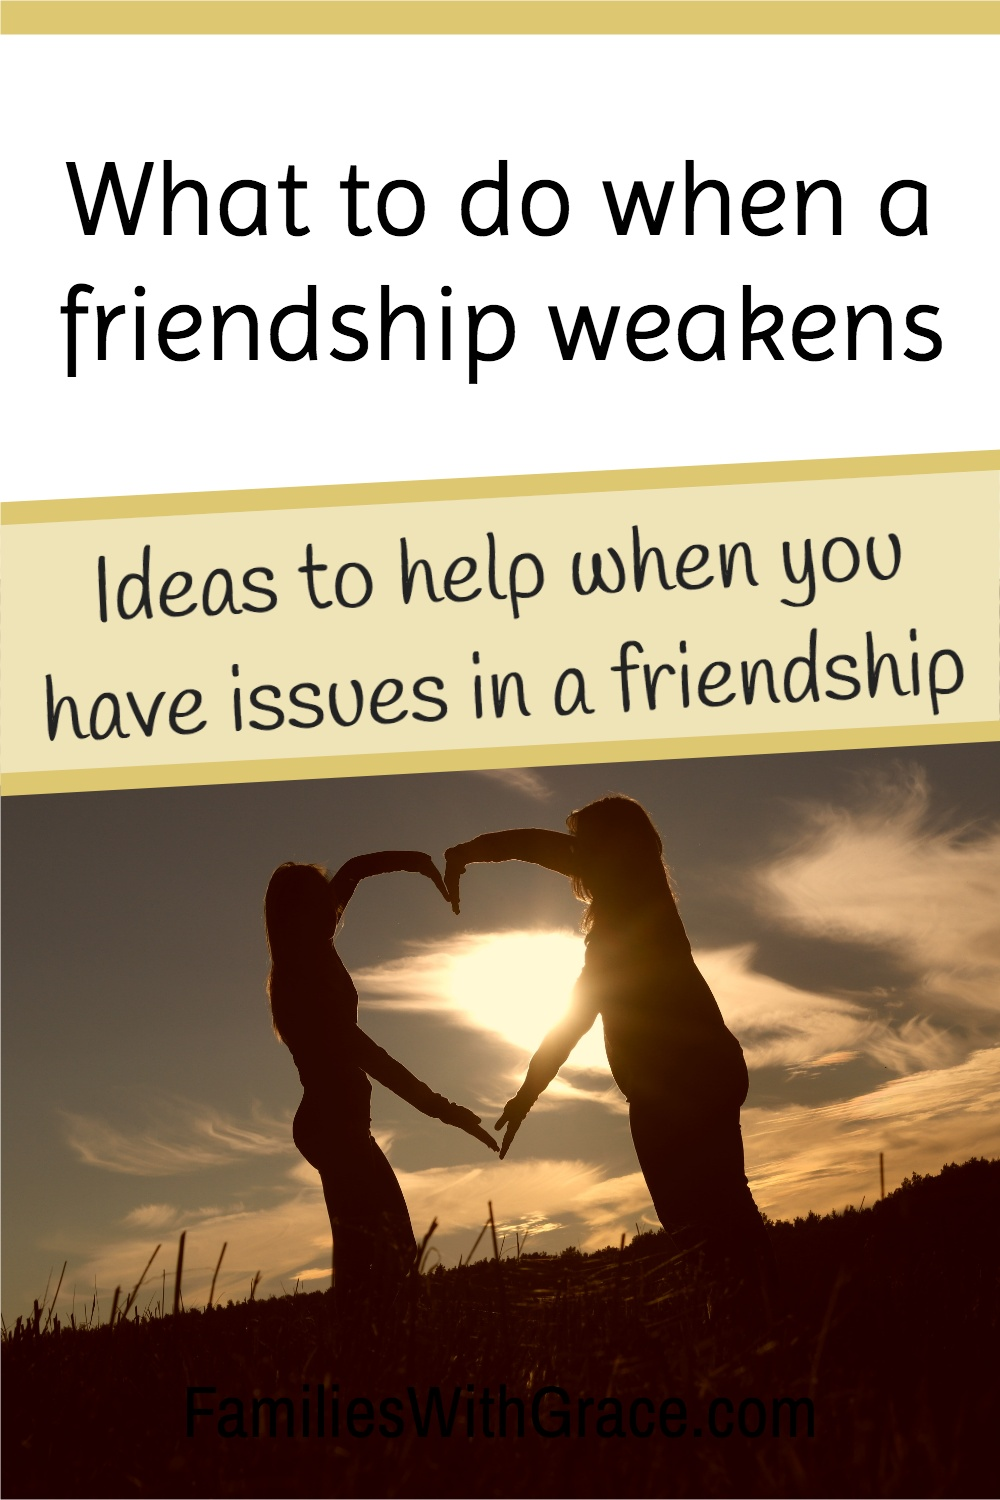 What to do when a friendship weakens